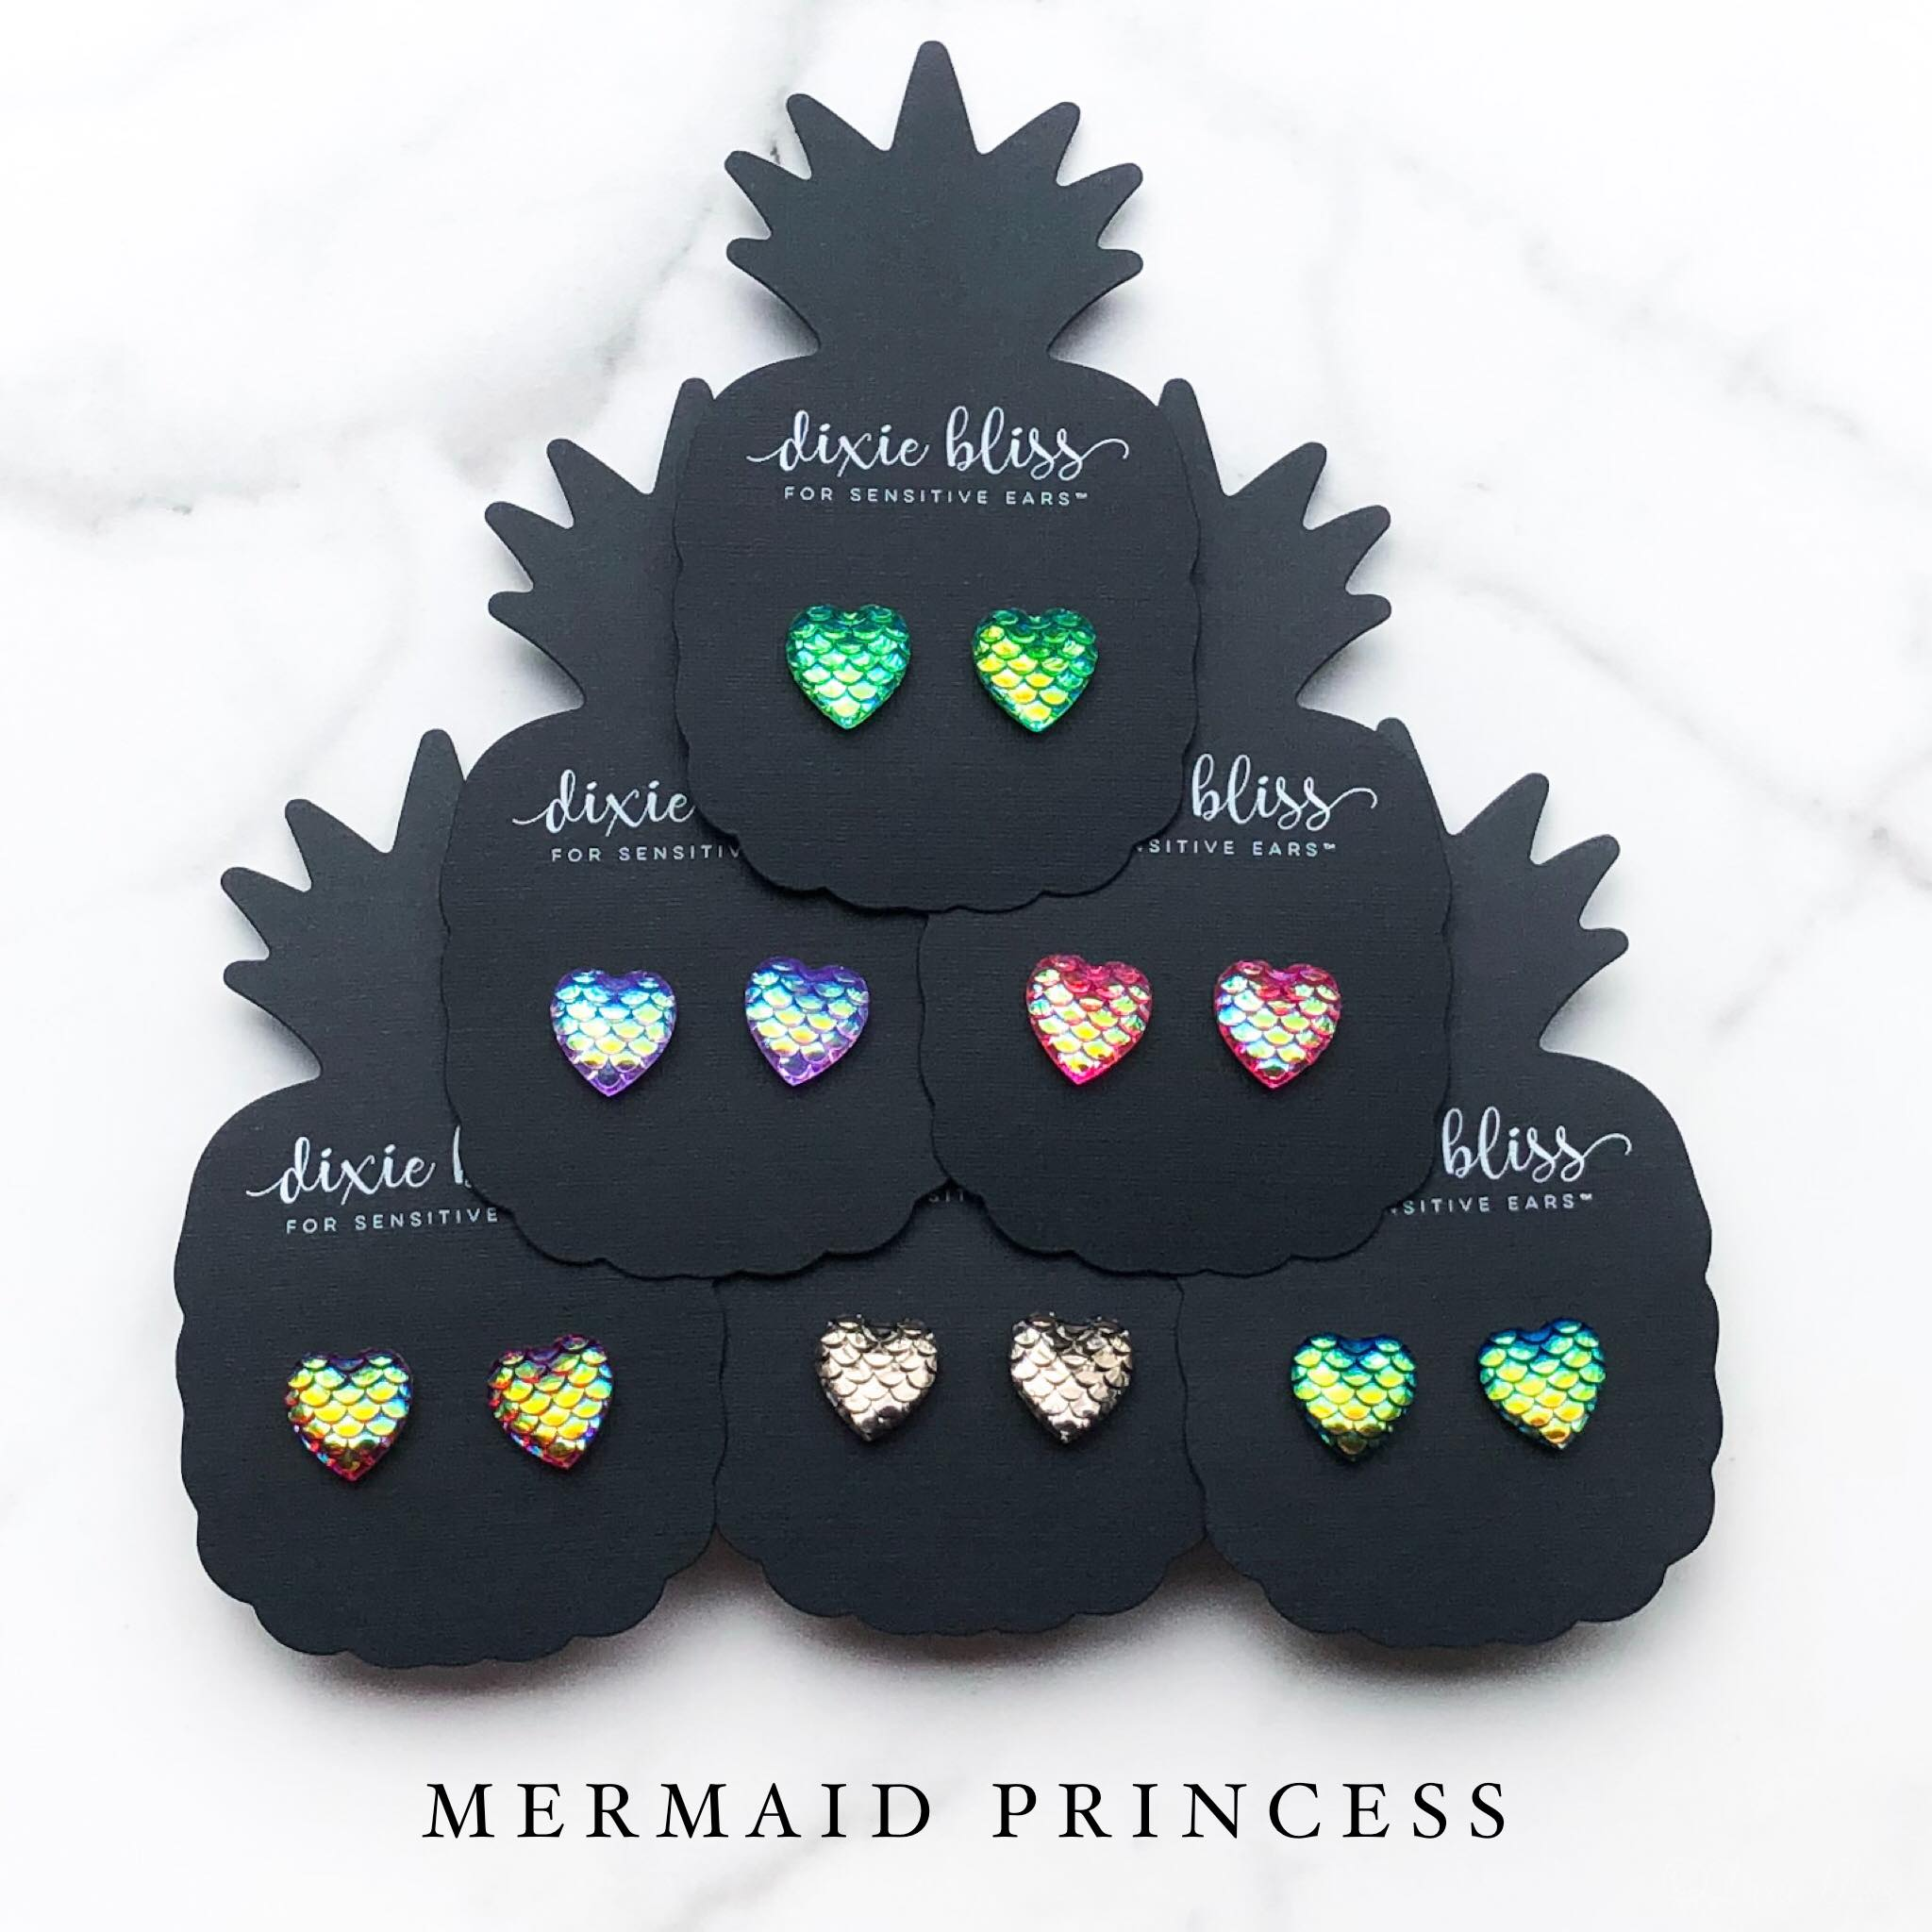 Mermaid Princess - Dixie Bliss Luxuries